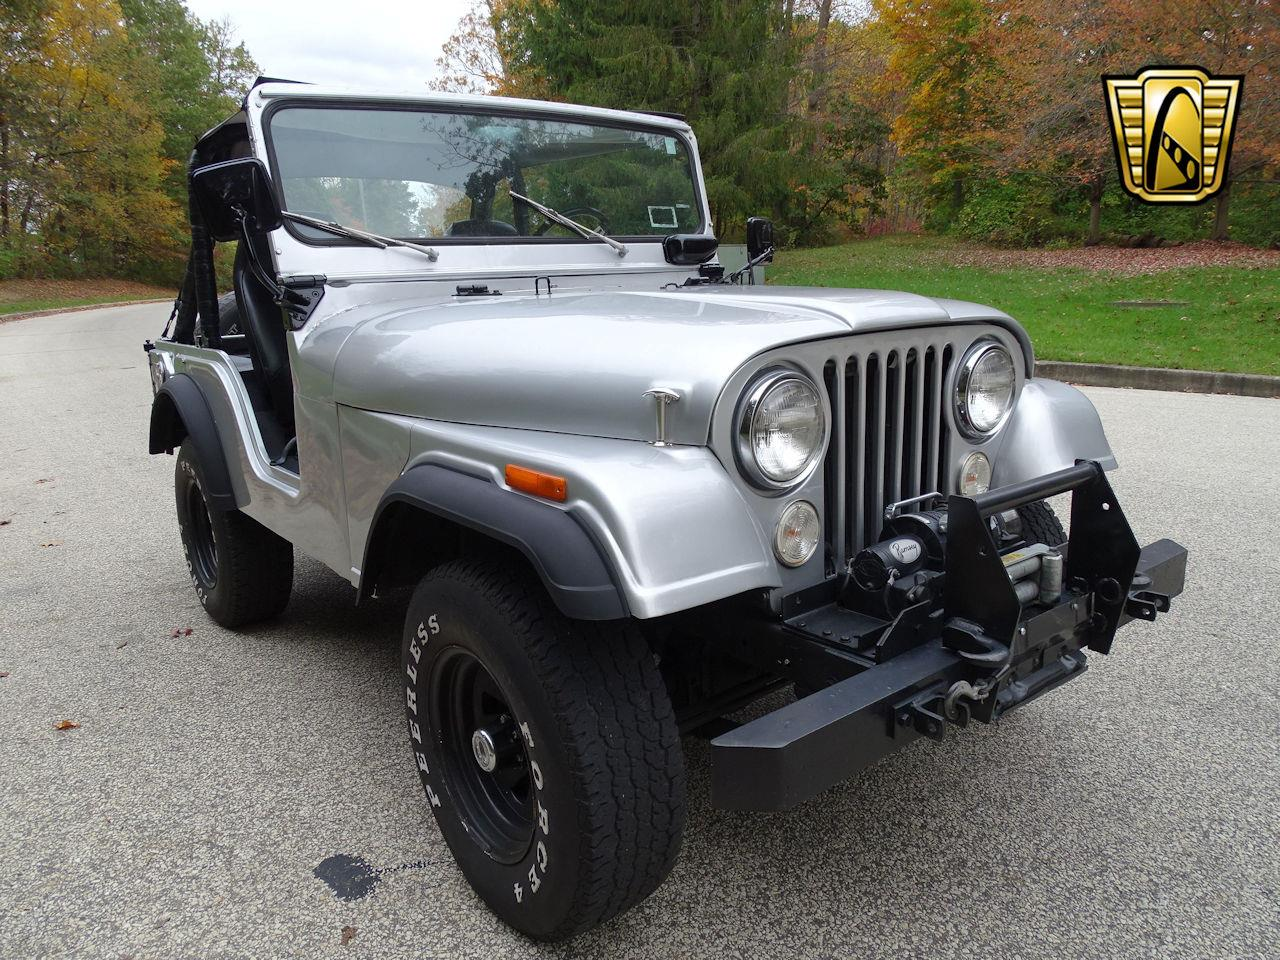 Large Picture of '75 CJ5 located in West Deptford New Jersey - $14,995.00 - MDQG